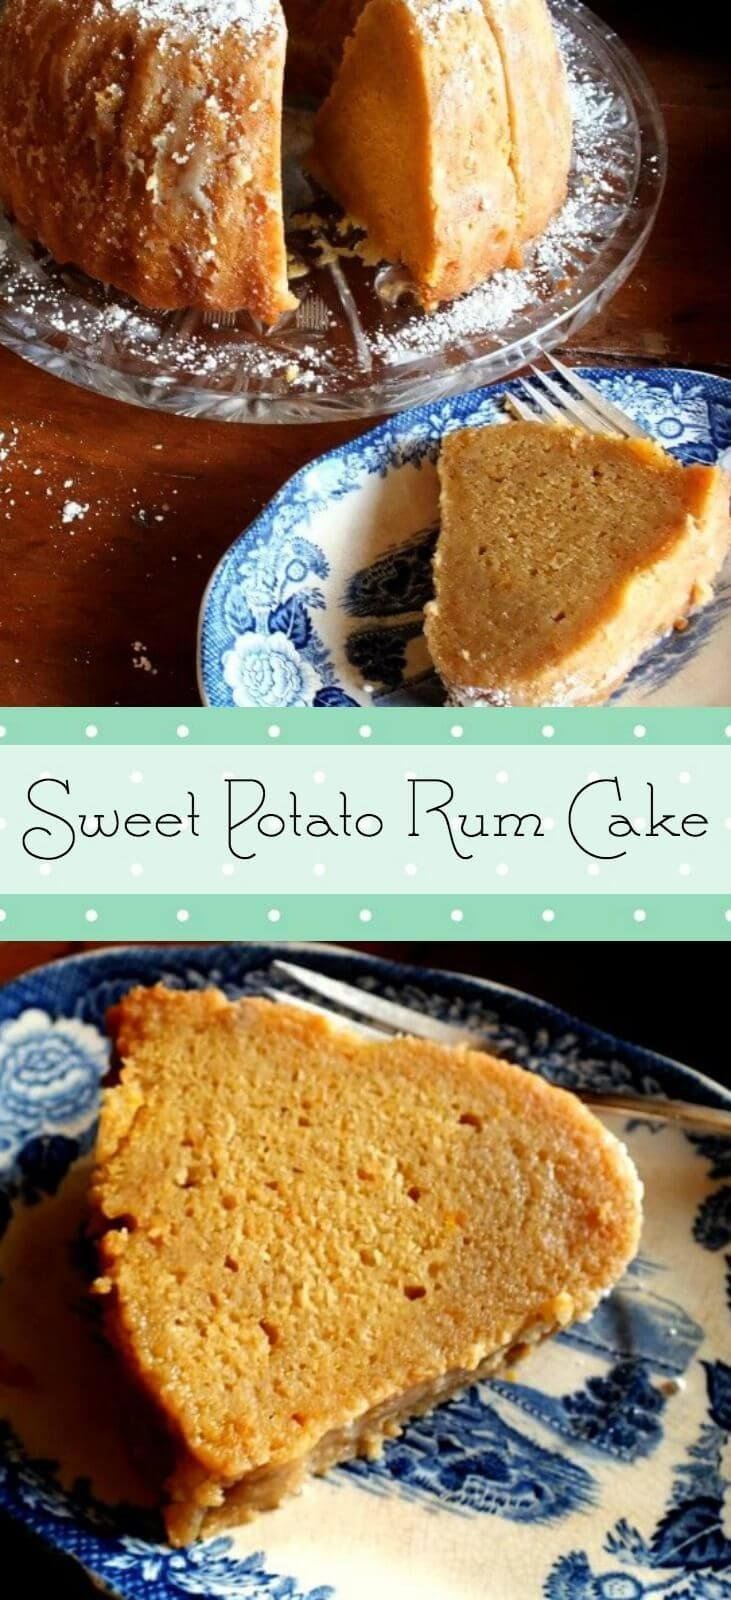 Sweet Potato Rum cake is a made from scratch recipe. Perfect for the holidays! From http://RestlessChipotle.com via @Marye at Restless Chipotle